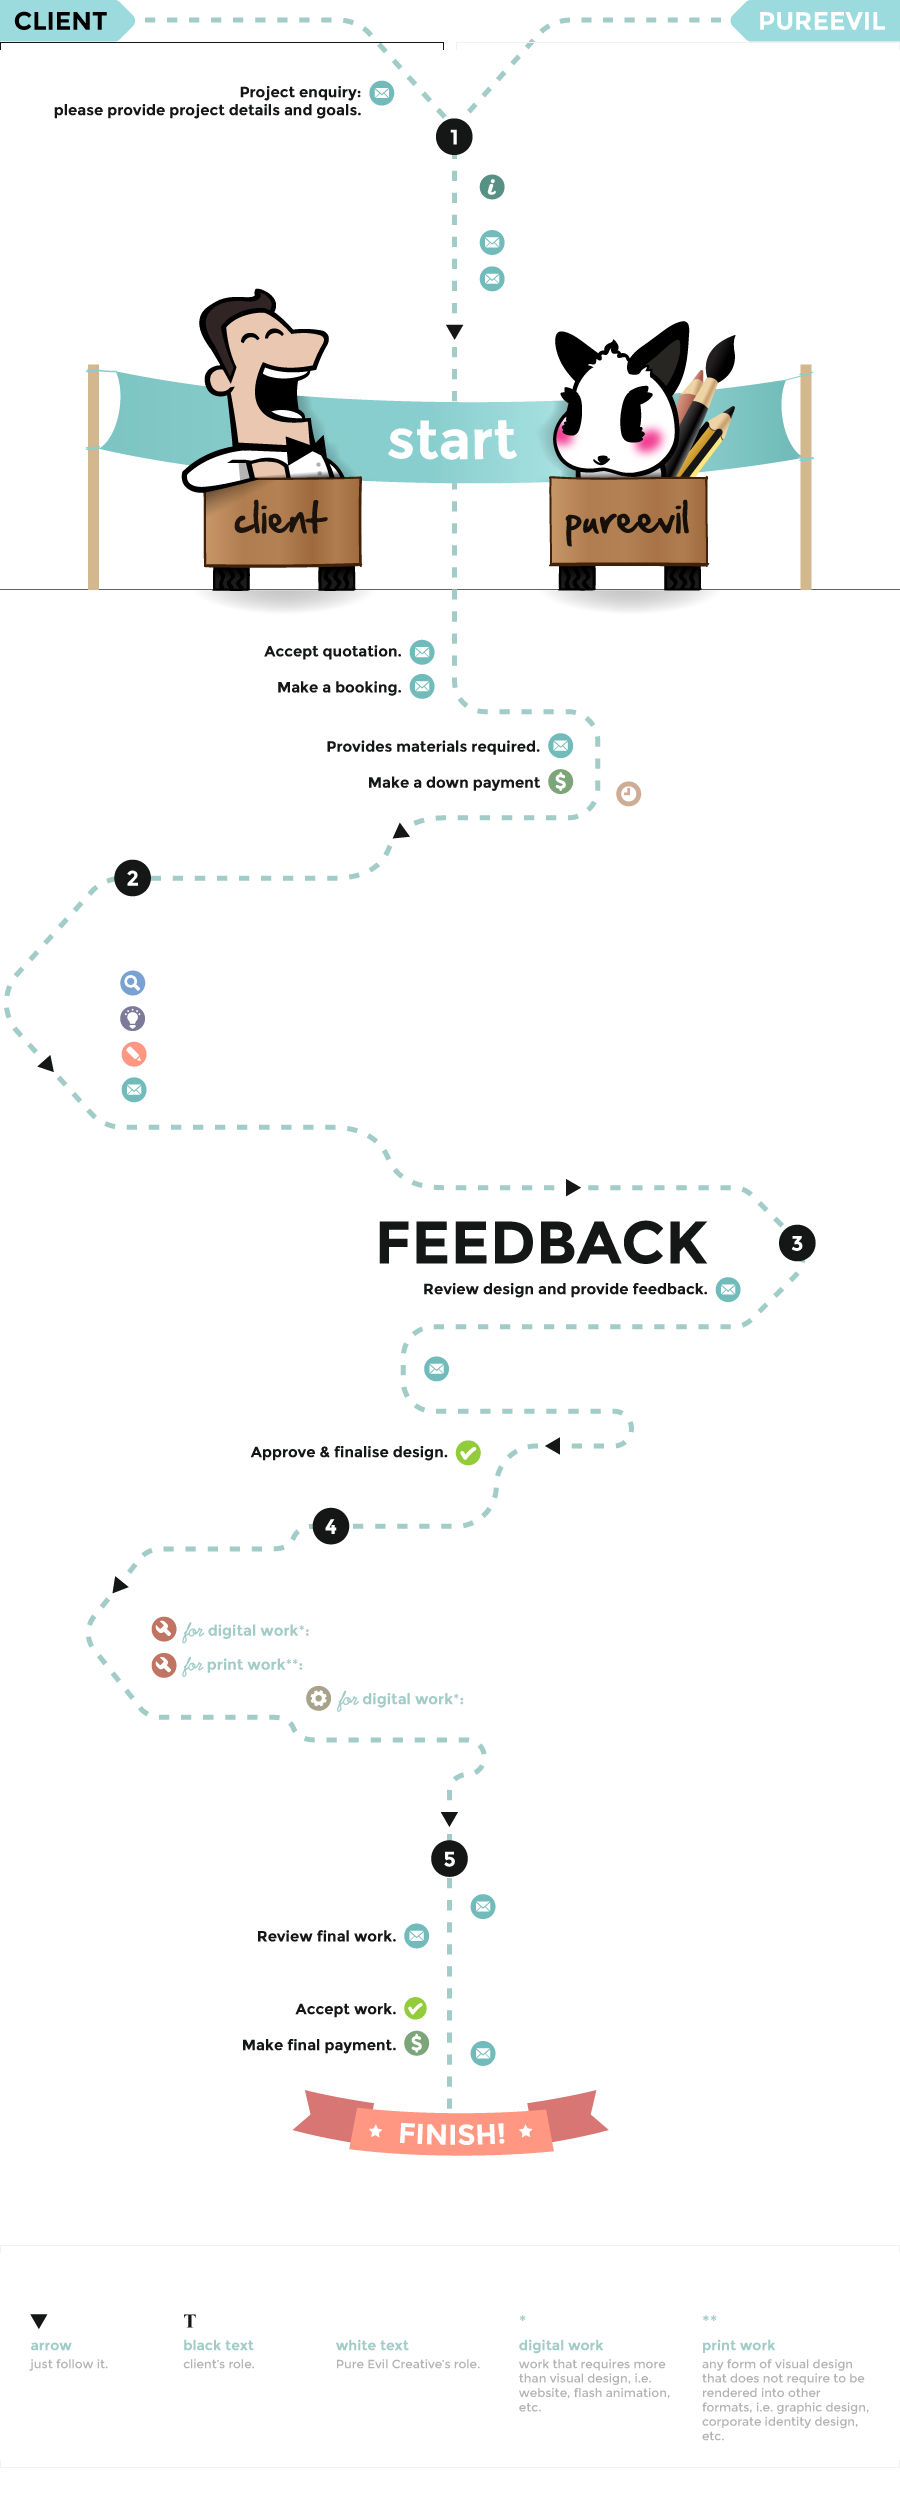 infographic of our design process: listen > design > feedback > build > deliver. This flowchart will help you visualize the entire process from start to end.